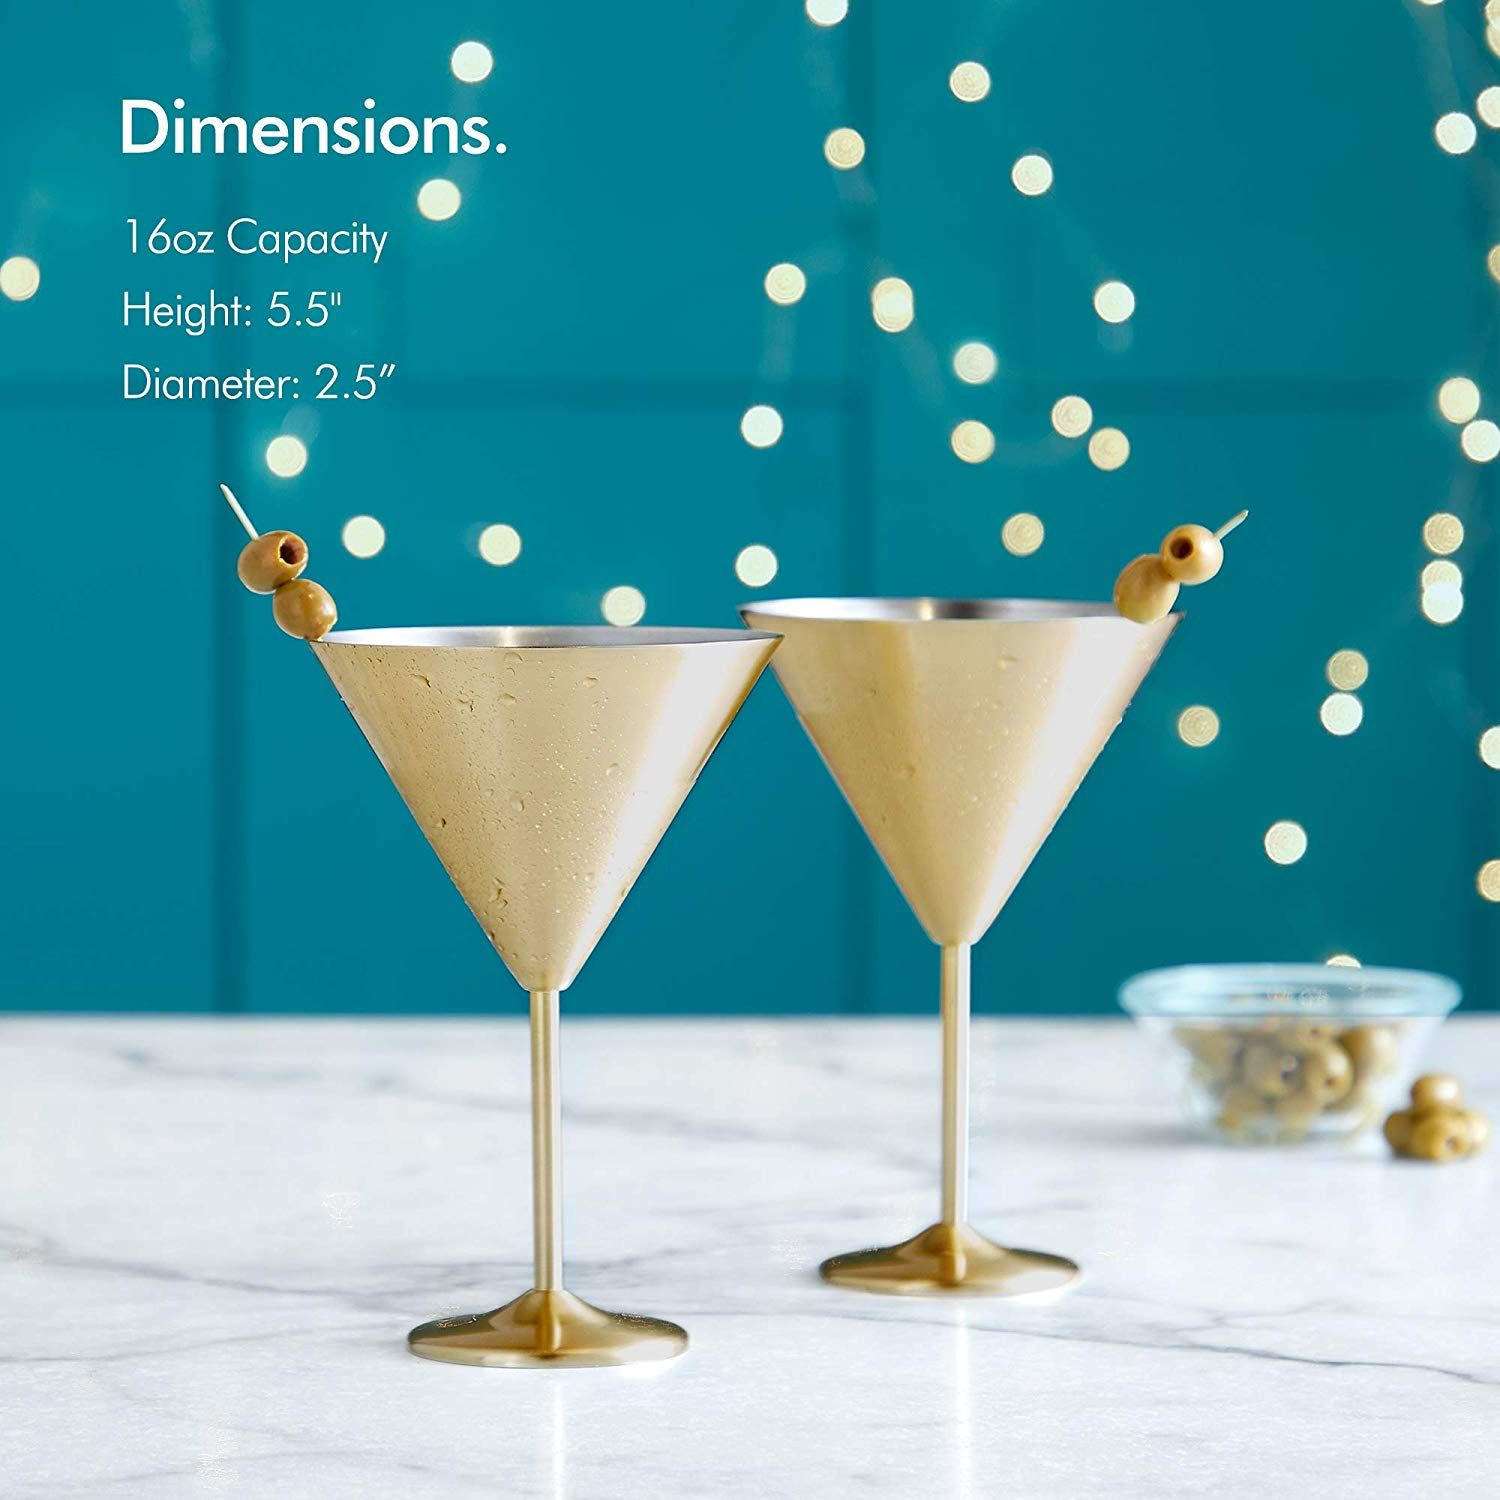 Amazon Com Vonshef 16oz Gold Martini Cocktail Glasses Brushed Gold Stainless Steel Set Of 2 With Gift Box Martini Martini Cocktail Martini Glasses Martini